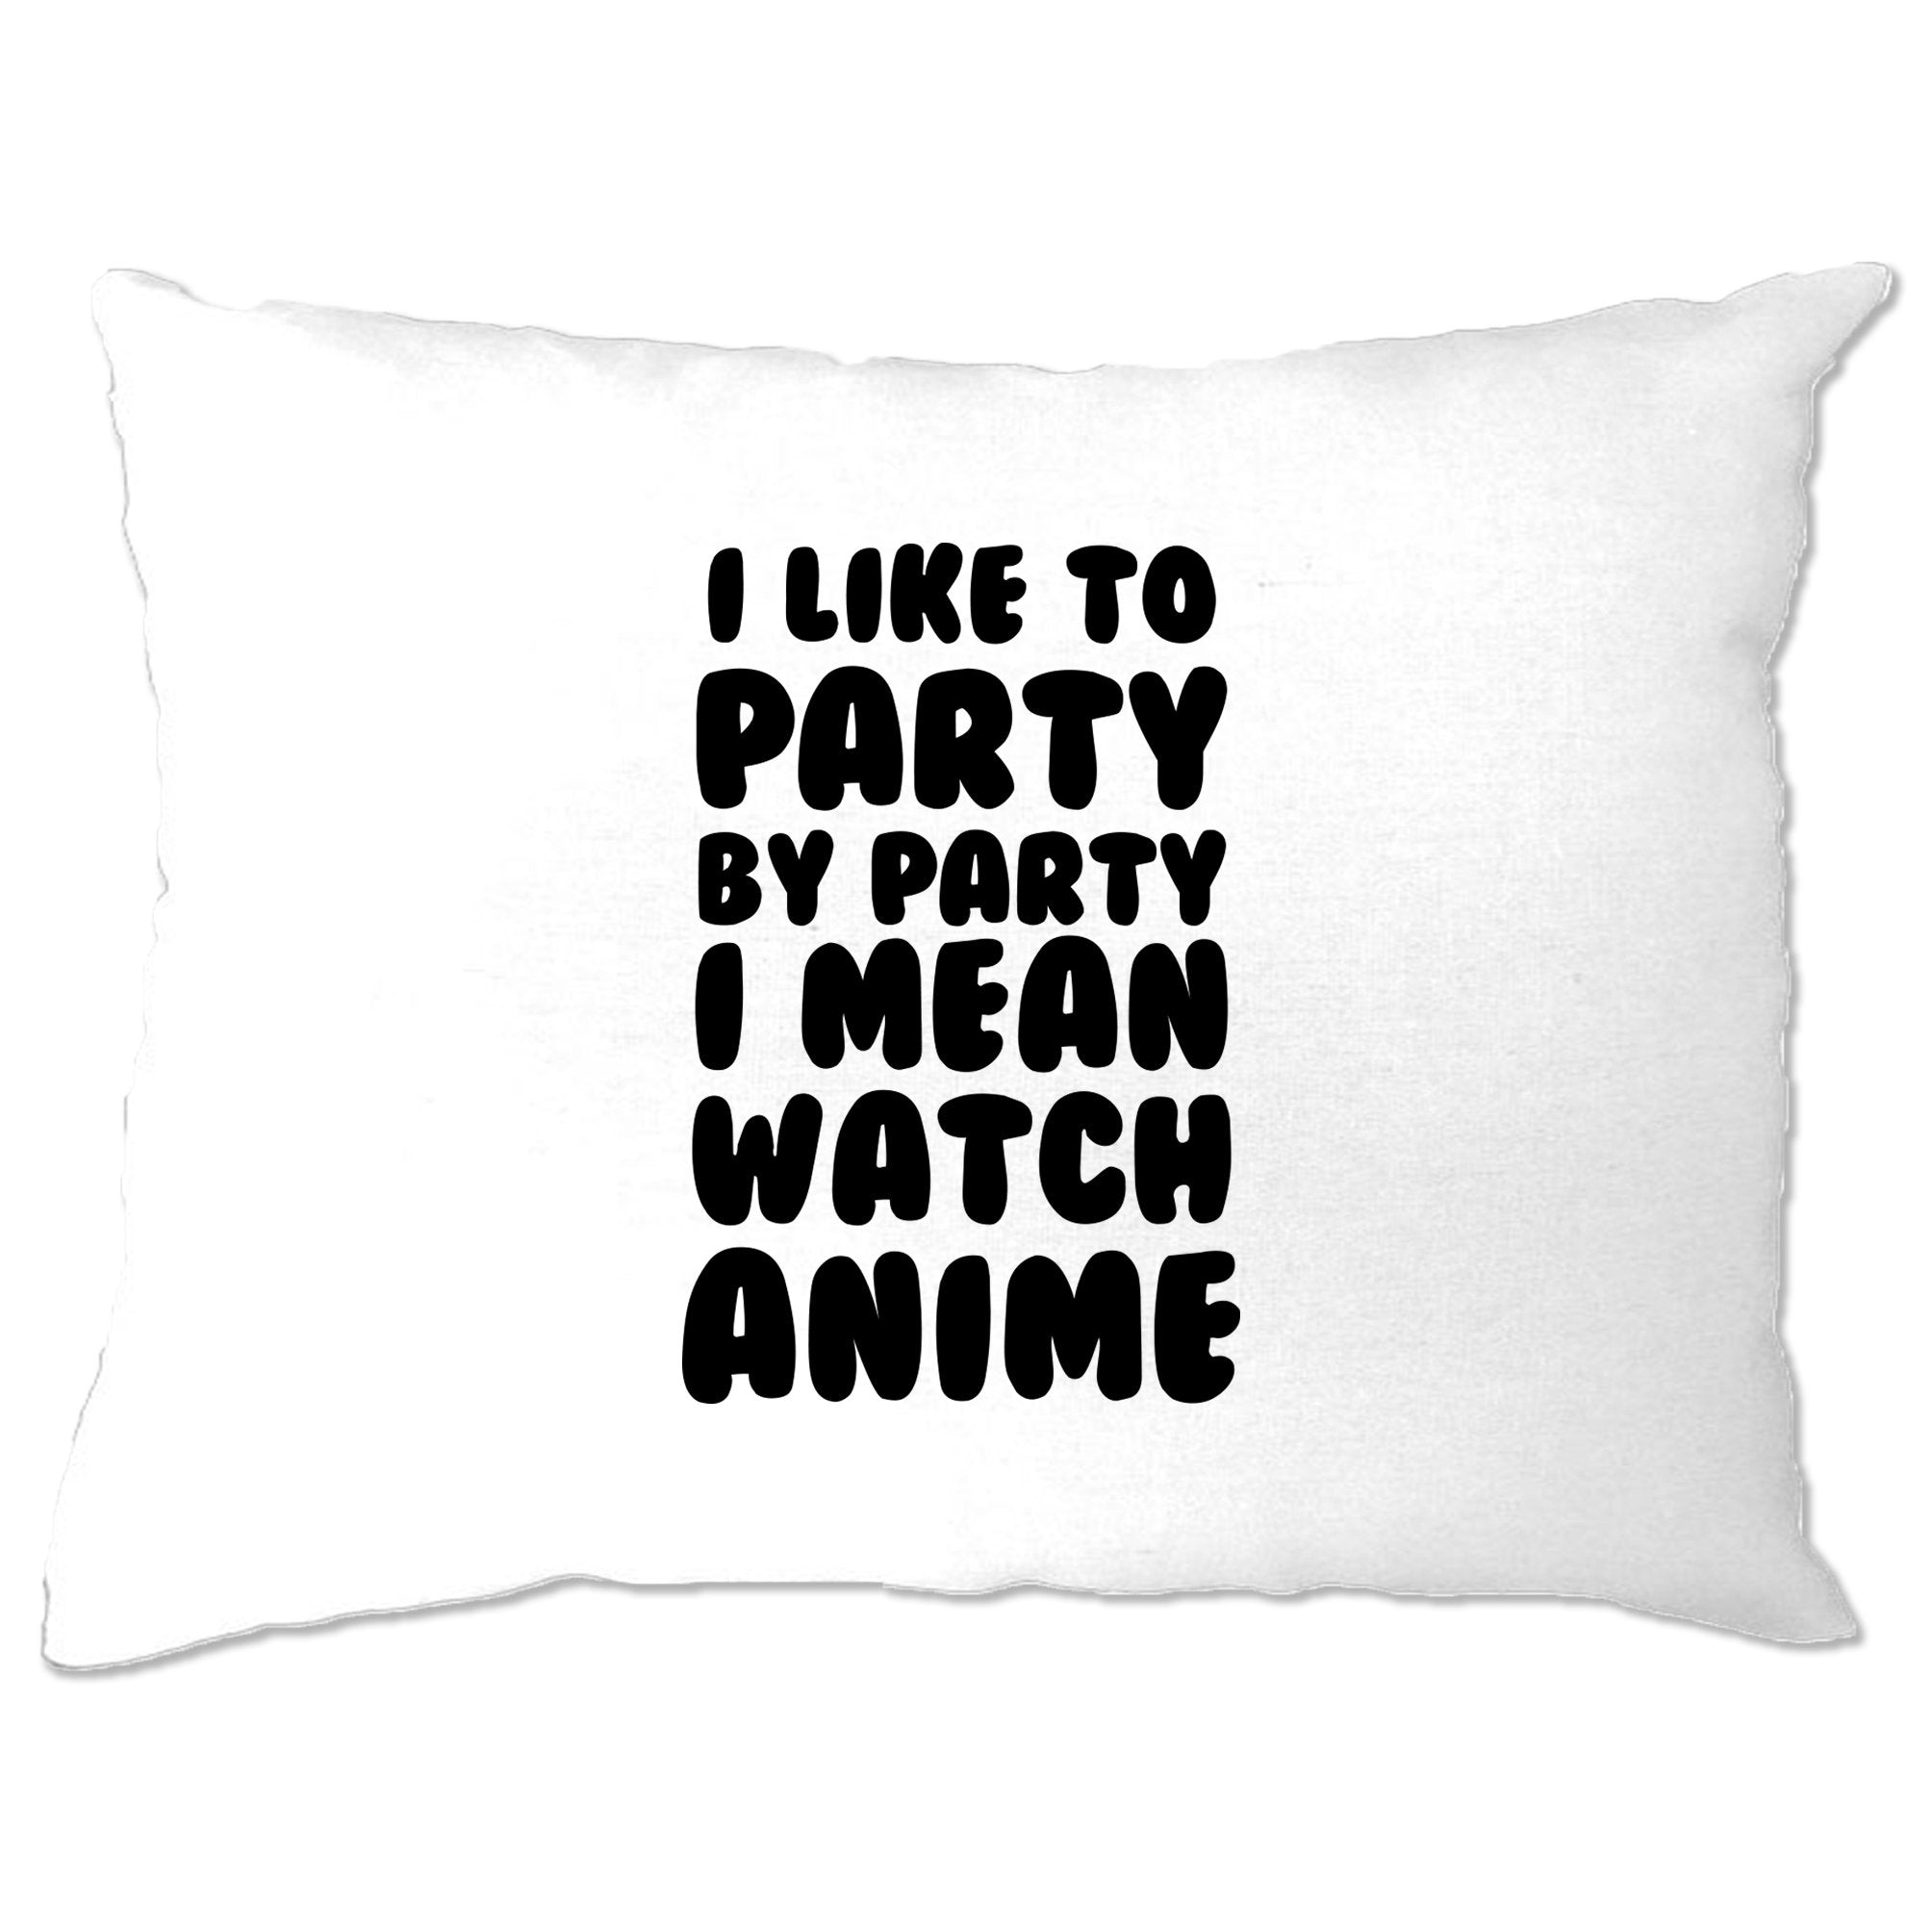 Joke Pillow Case I Like To Party, I Mean Watch Anime